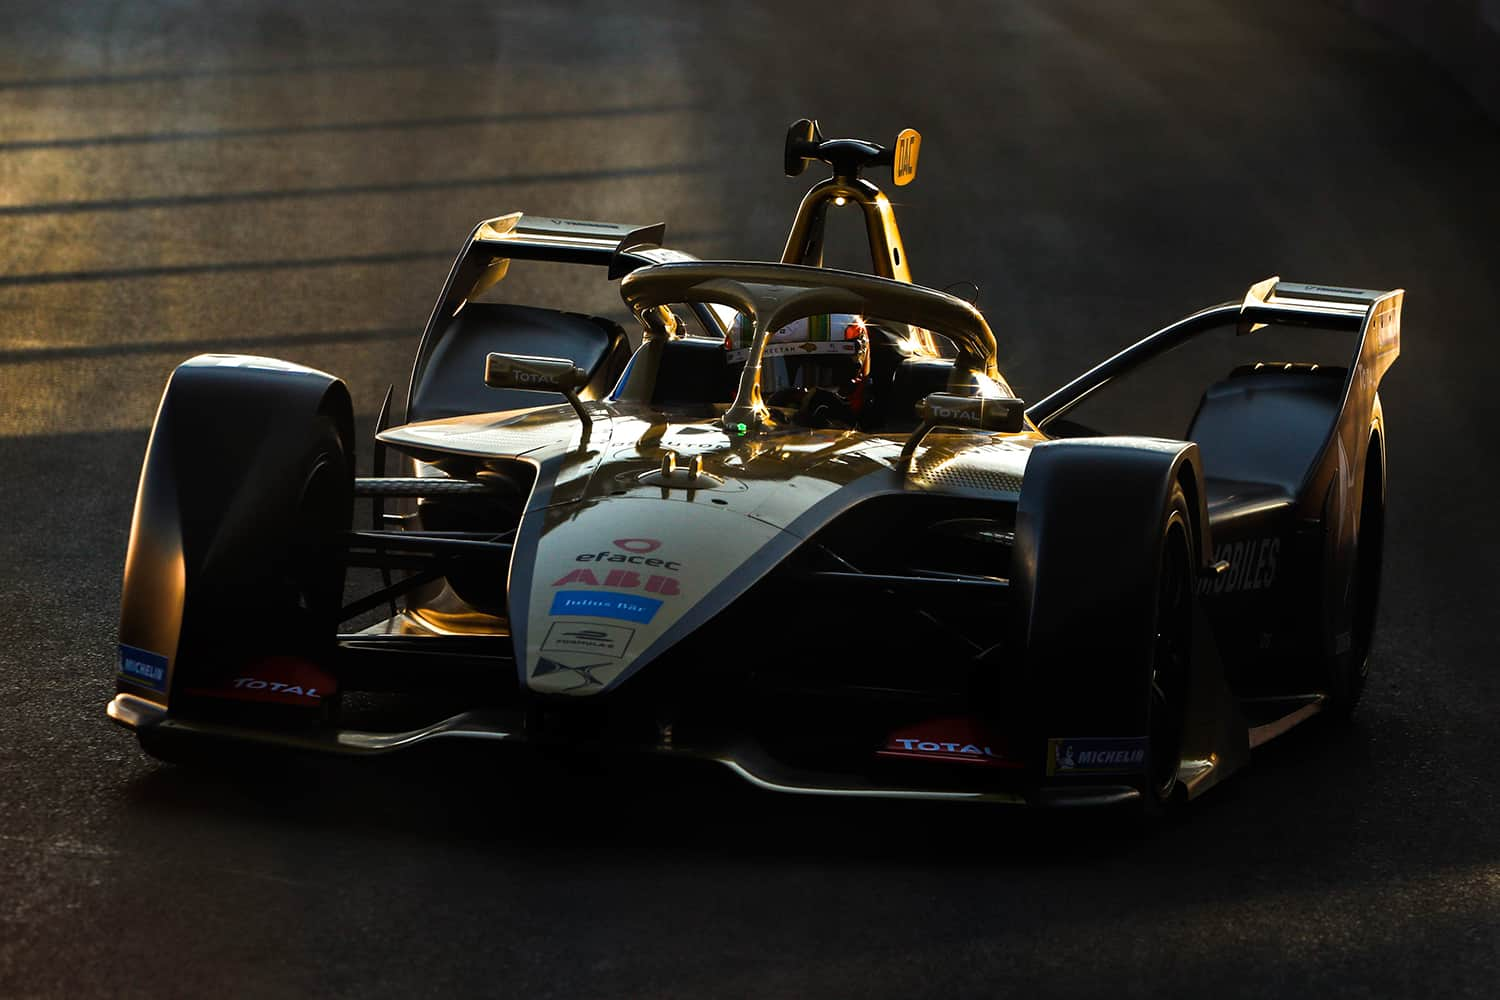 RIYADH STREET CIRCUIT, SAUDI ARABIA - NOVEMBER 22: Antonio Felix da Costa (PRT), DS Techeetah, DS E-Tense FE20 during the Diriyah E-prix I at Riyadh Street Circuit on November 22, 2019 in Riyadh Street Circuit, Saudi Arabia. (Photo by Alastair Staley / LAT Images)